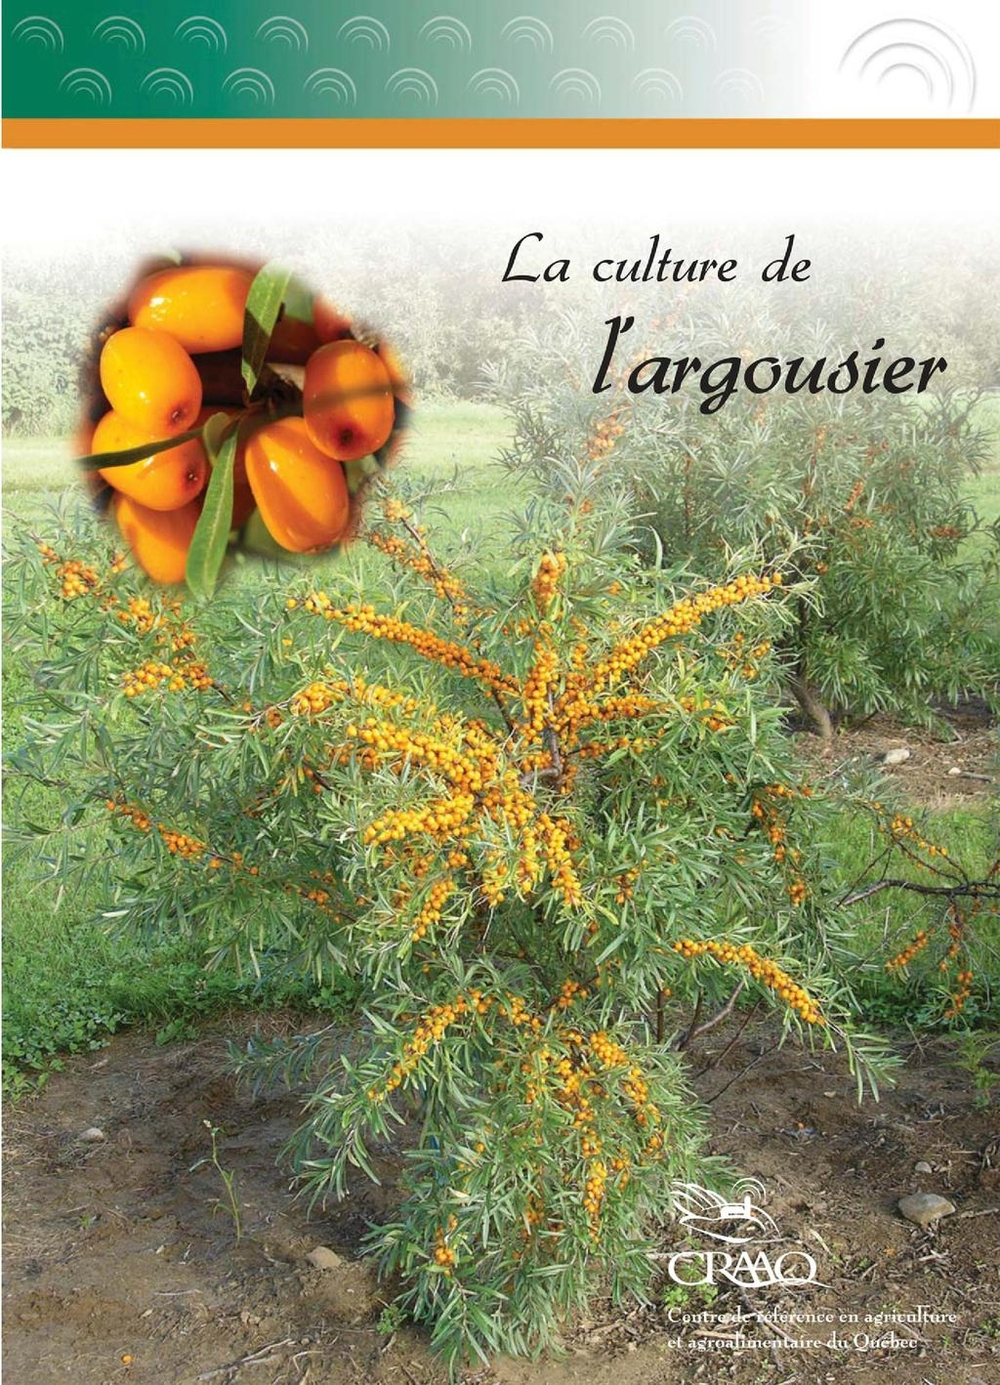 La culture de l'argousier